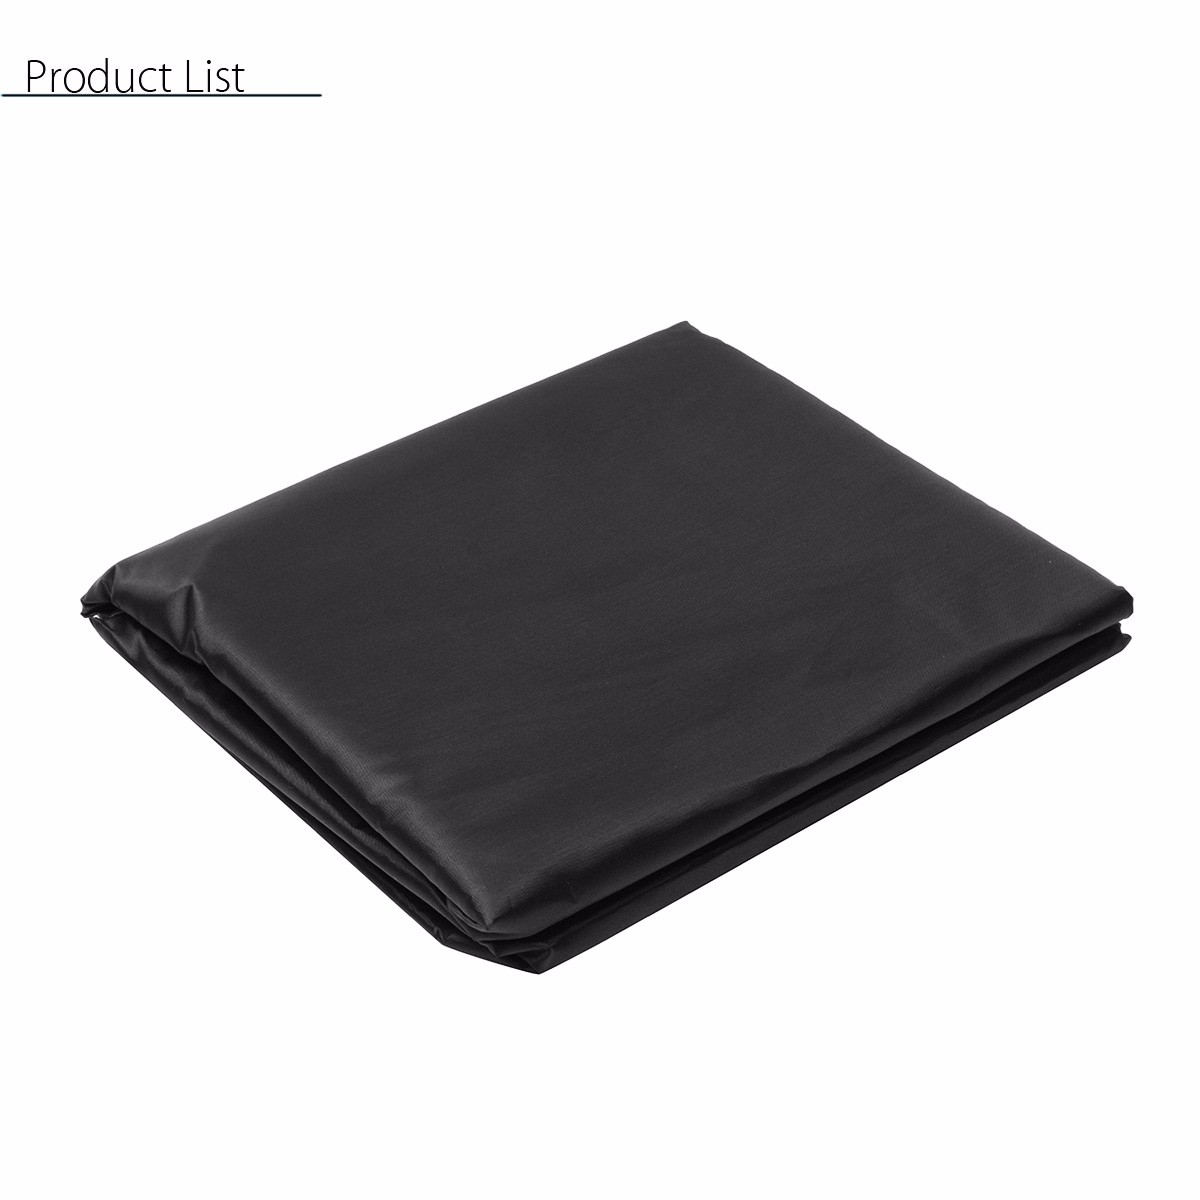 Fabulous Garden Waterproof Furniture Table Chair Bench Cover Protector Caraccident5 Cool Chair Designs And Ideas Caraccident5Info